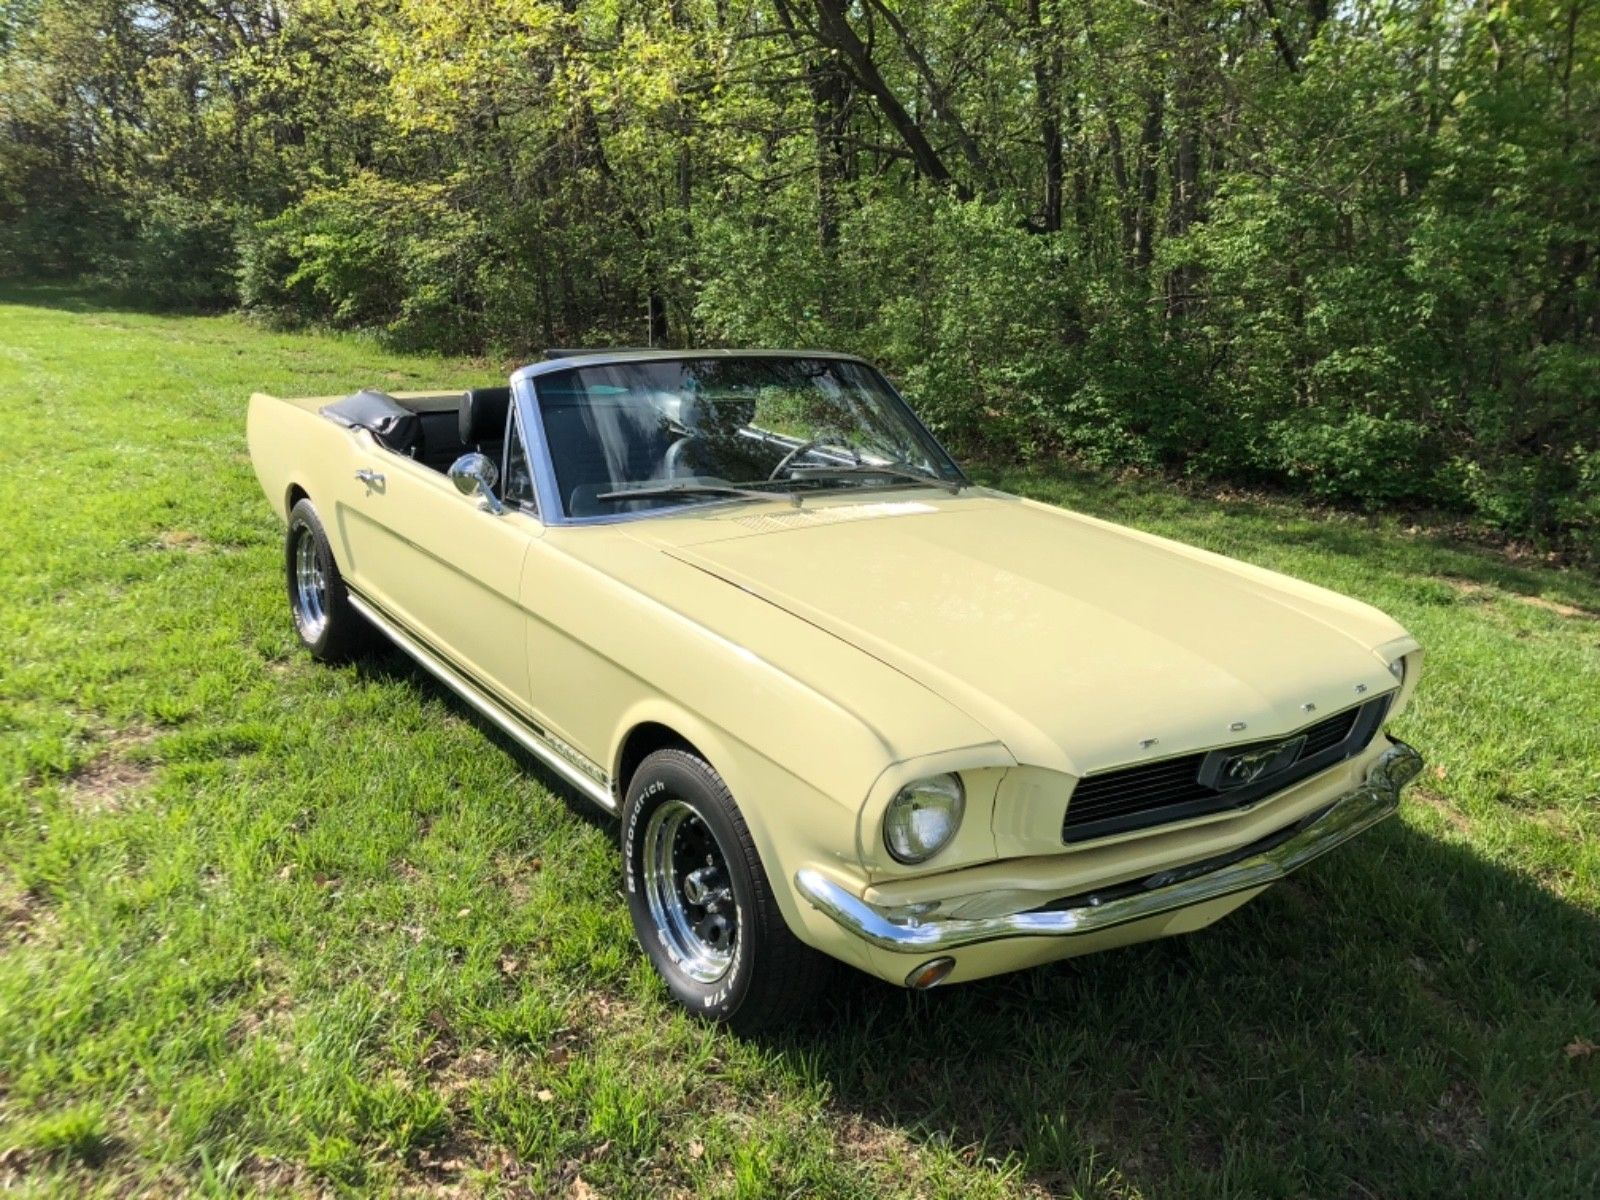 Great 1966 ford mustang 1966 classic mustang convertible affordable solid pony buy it now nice car here 2017 2018